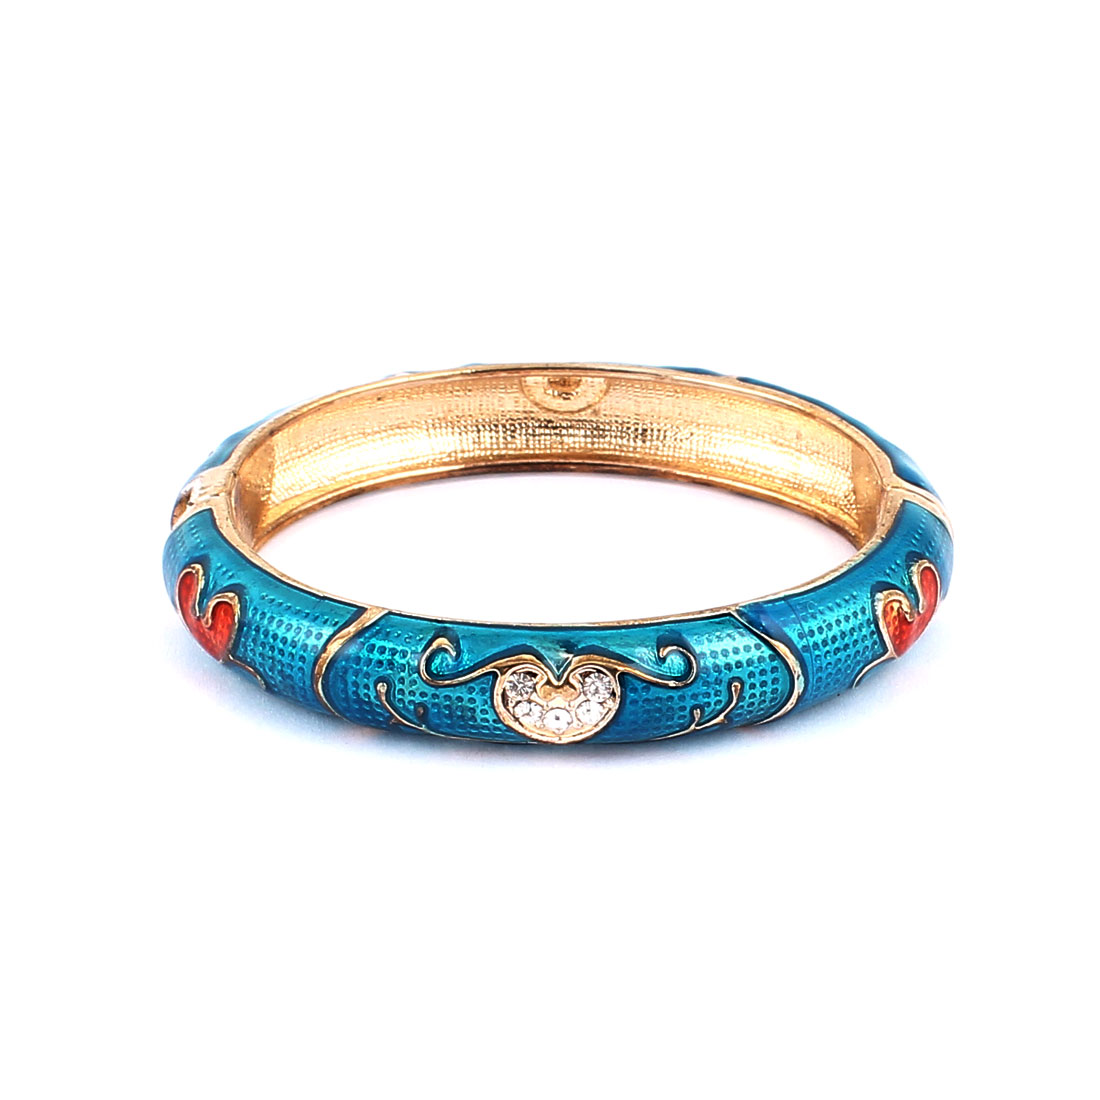 Woman Lady Jewelry Gift Oval Cuff Heart Carved Enamel Bracelet Bangle Teal Blue